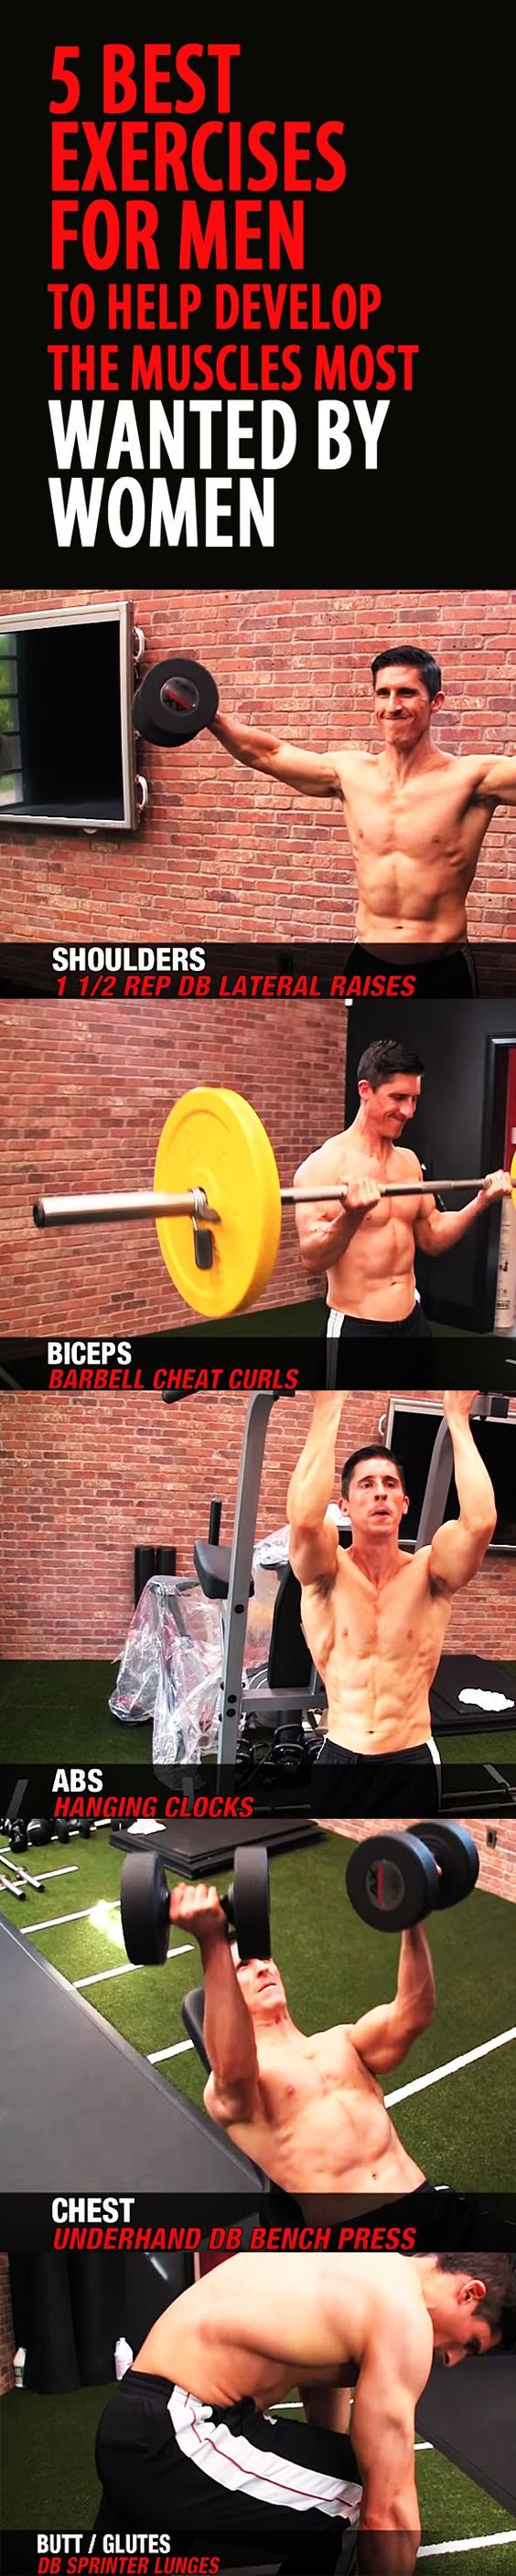 5 best exercises for men to help develop the muscles most WANTED BY WOMEN. #musclebuilding